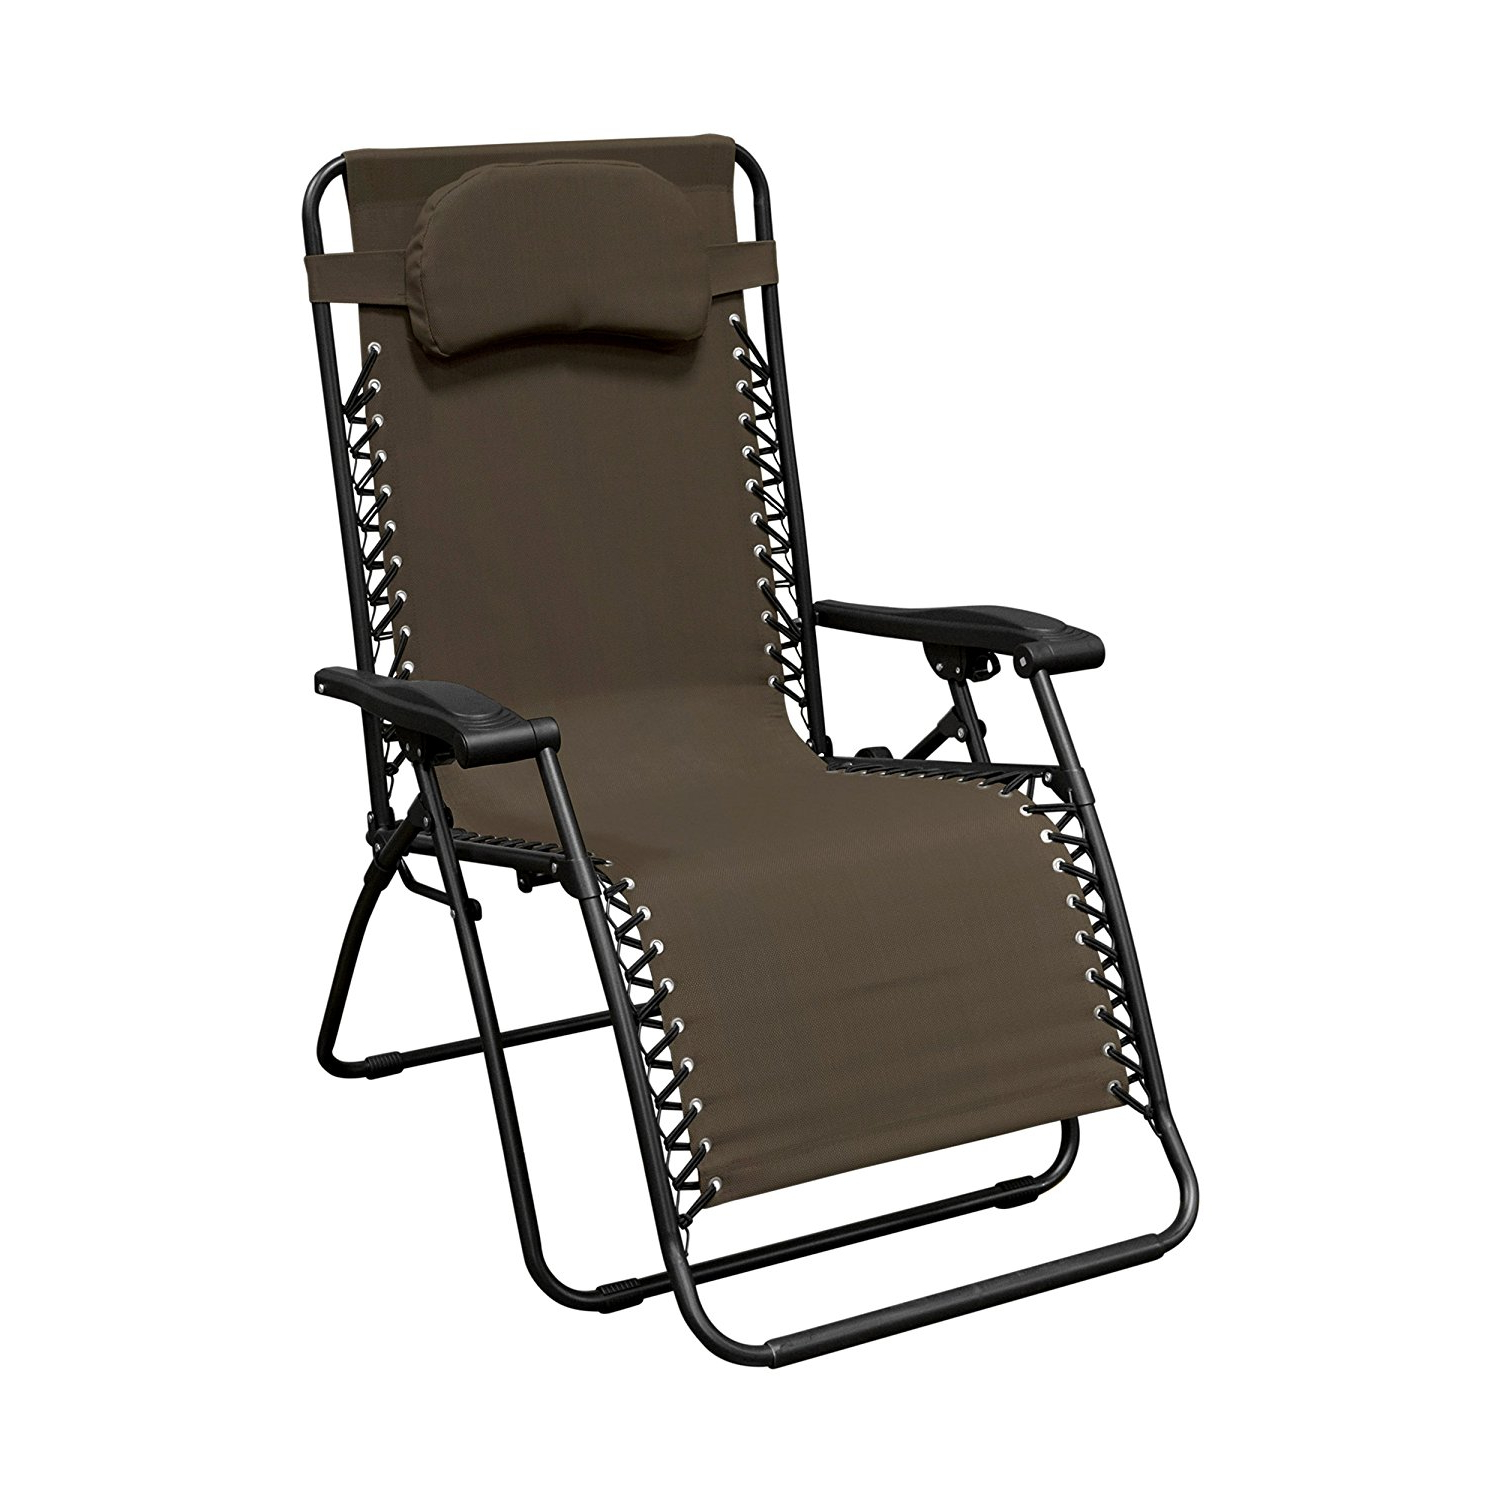 Caravan Zero Gravity Chair Reviews And Buying Guide In 2019 With Recent Caravan Sports Grey Infinity Chairs (View 18 of 25)